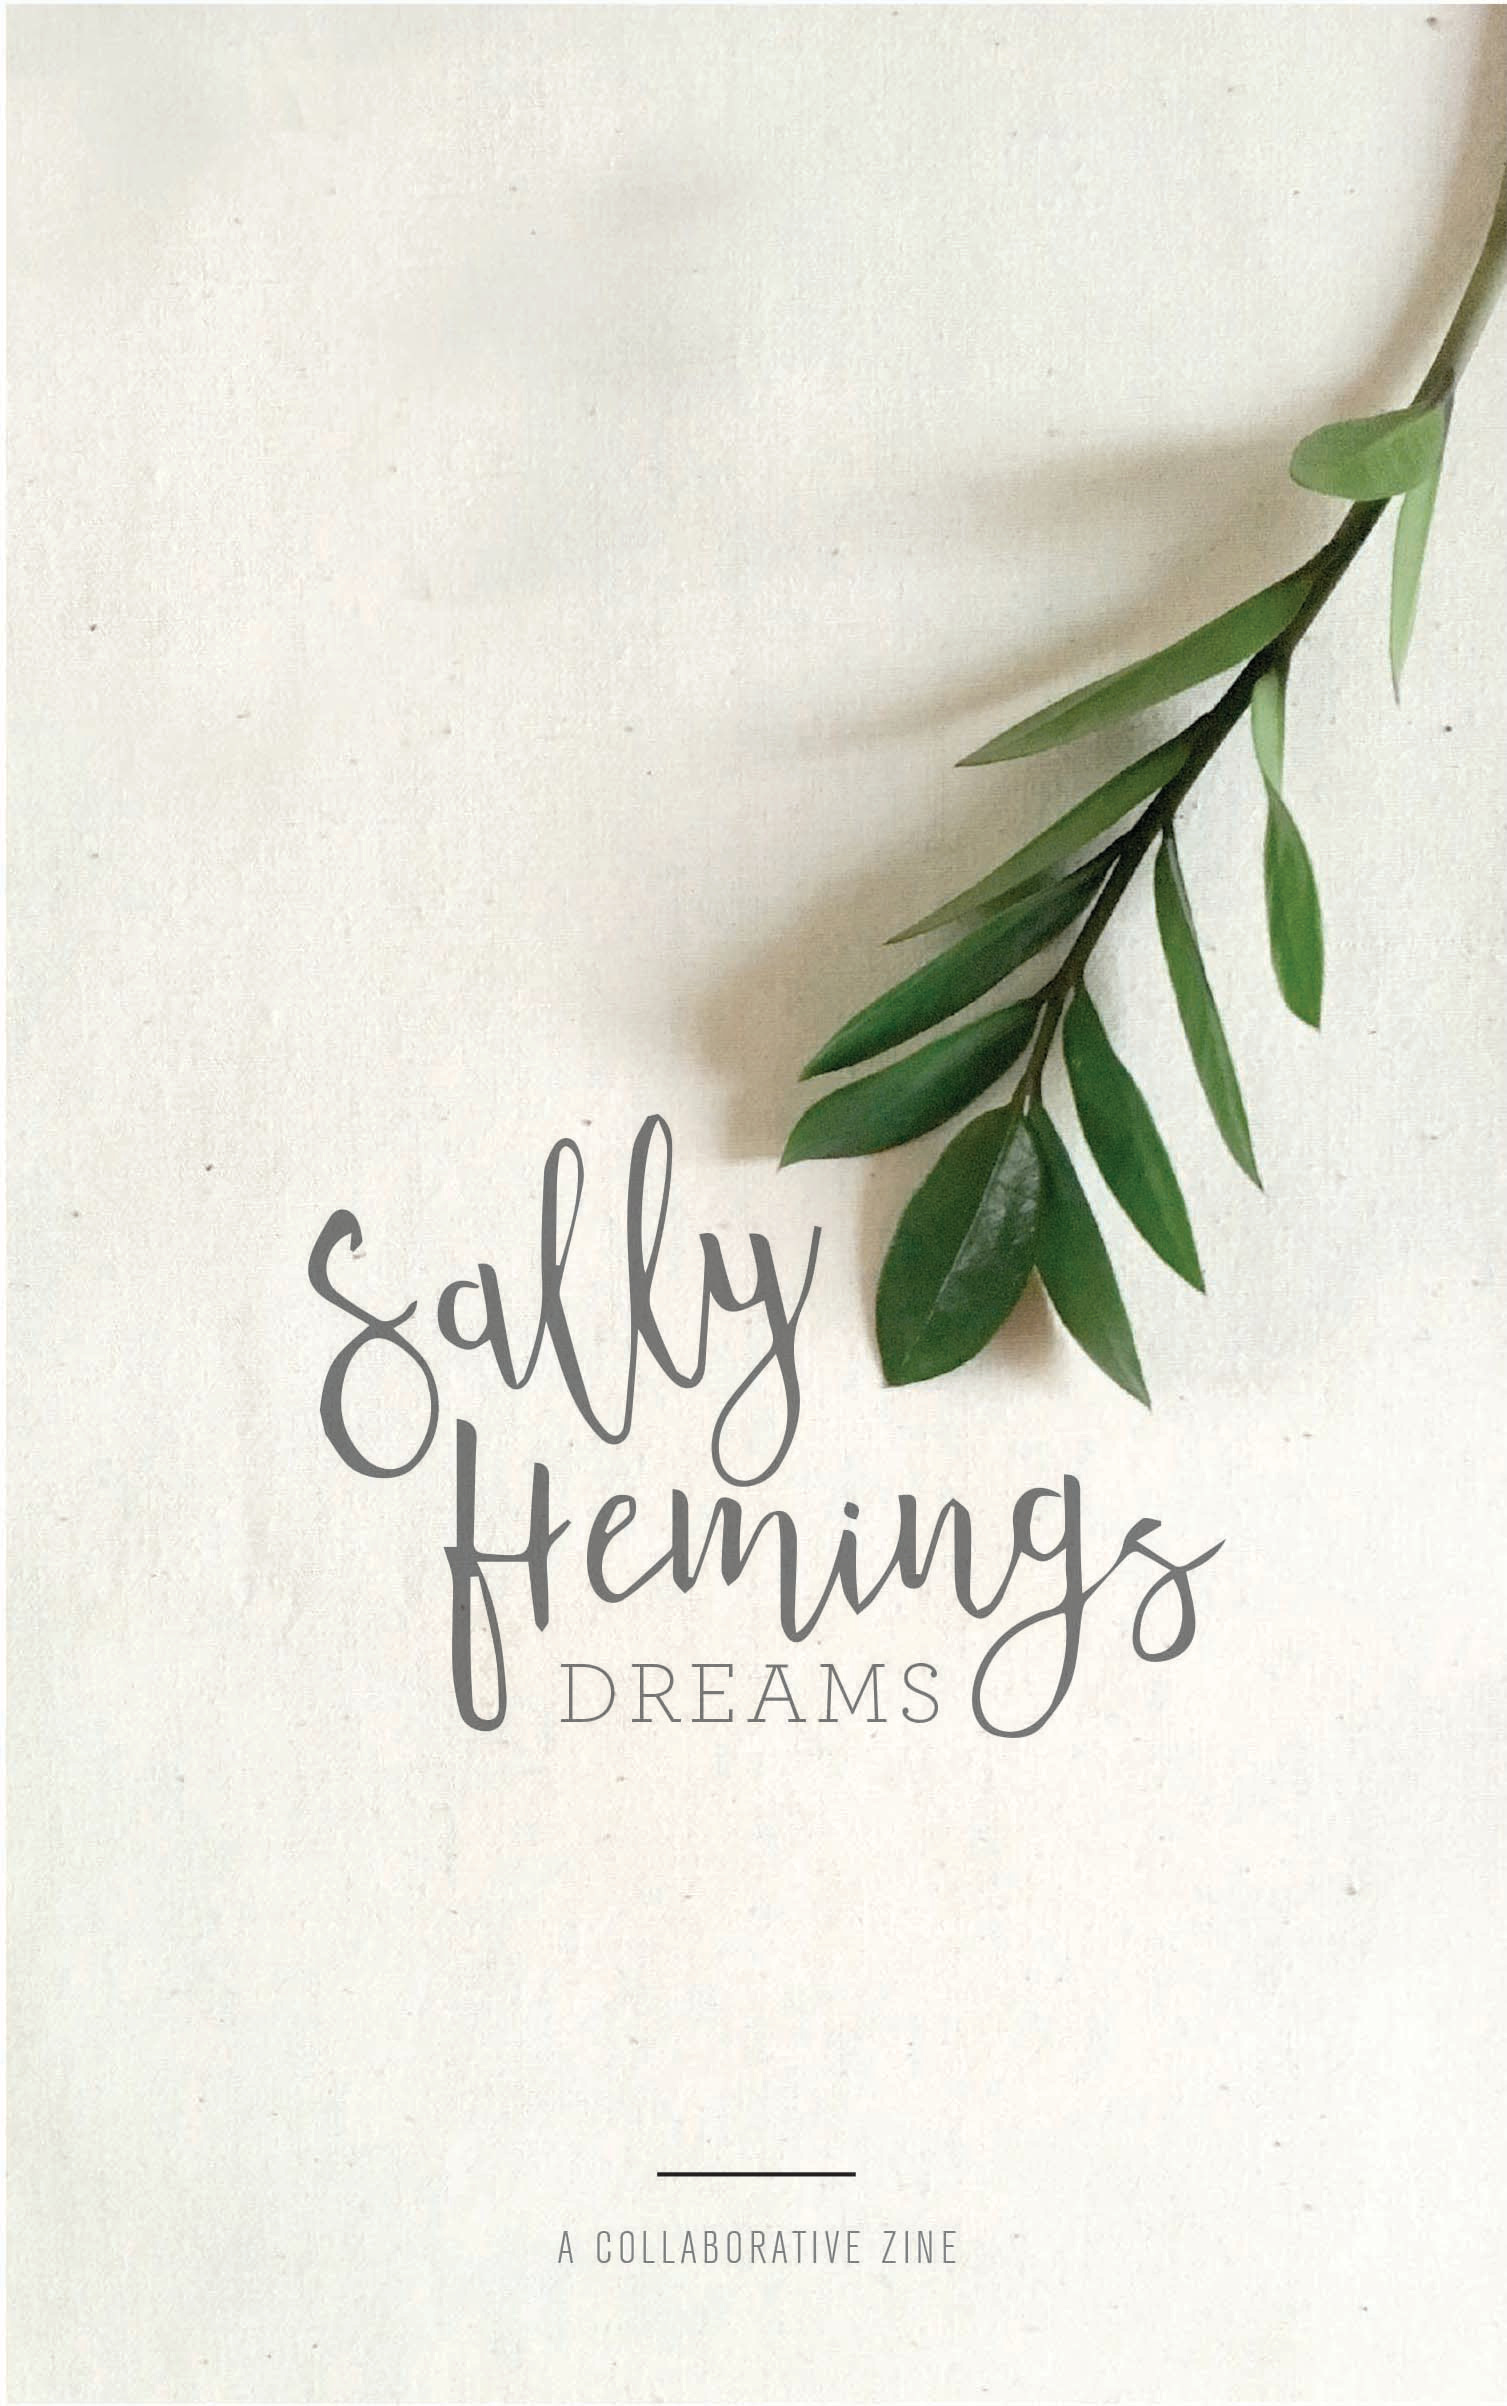 Sally Hemings Dreams